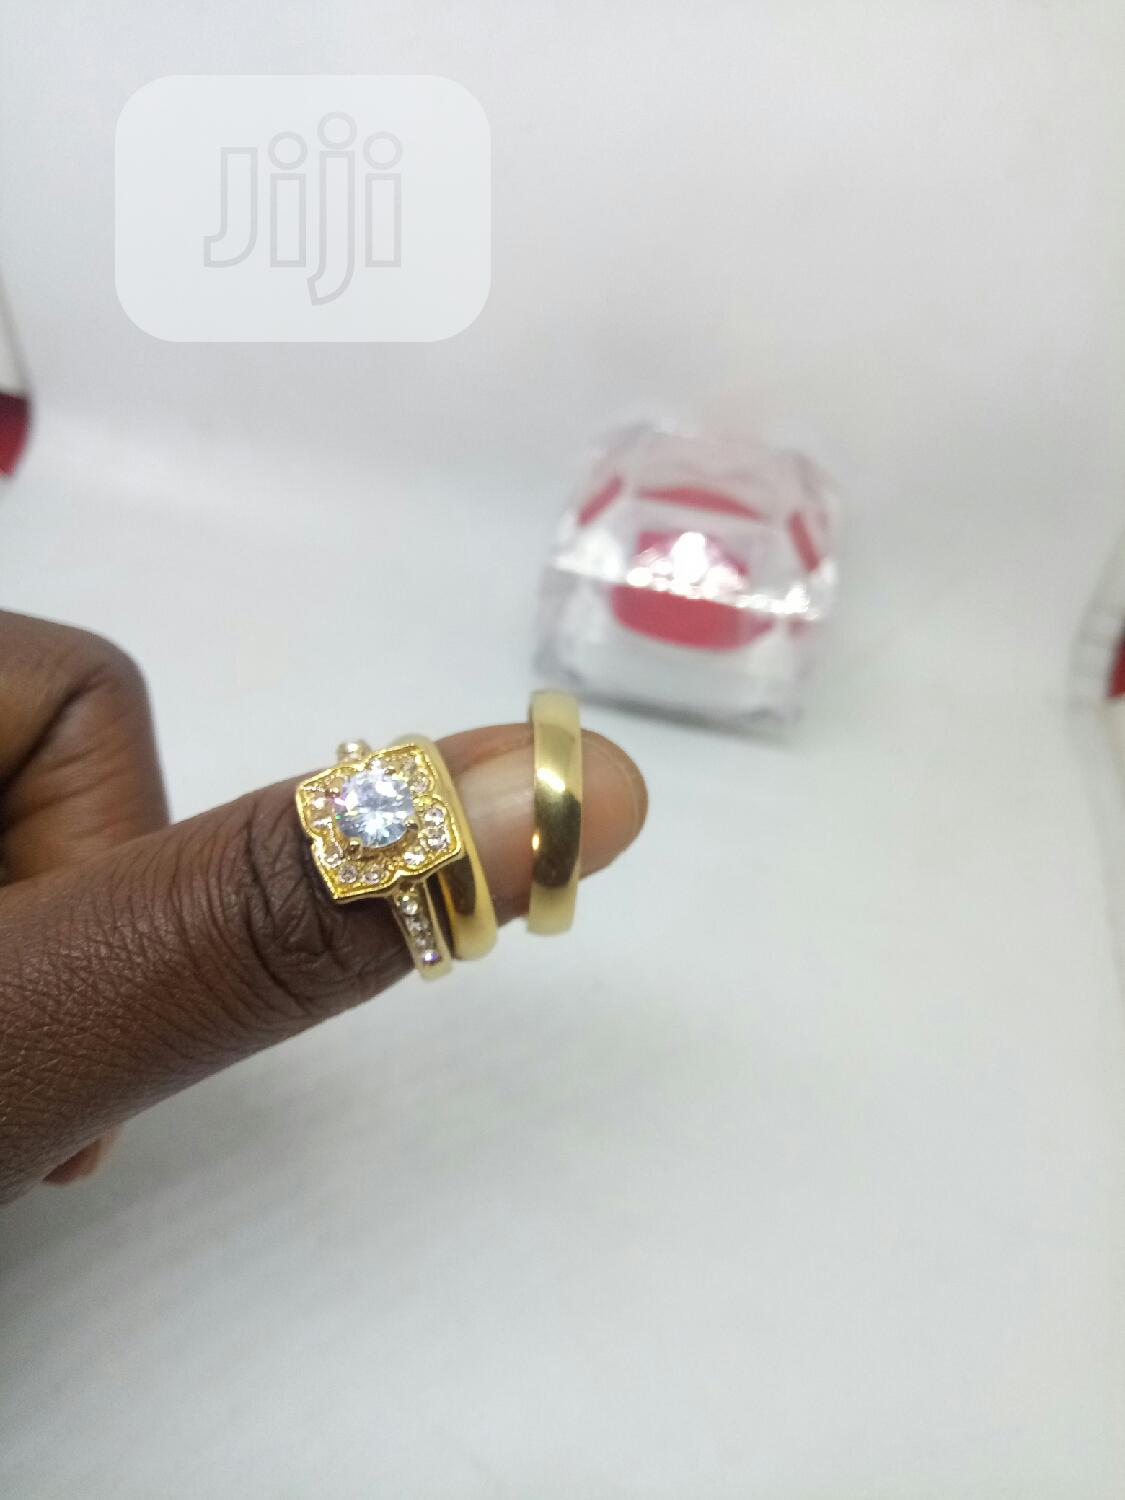 Rose Indiana Couples Set of Wedding Ring 0015 - Gold | Wedding Wear & Accessories for sale in Ojodu, Lagos State, Nigeria